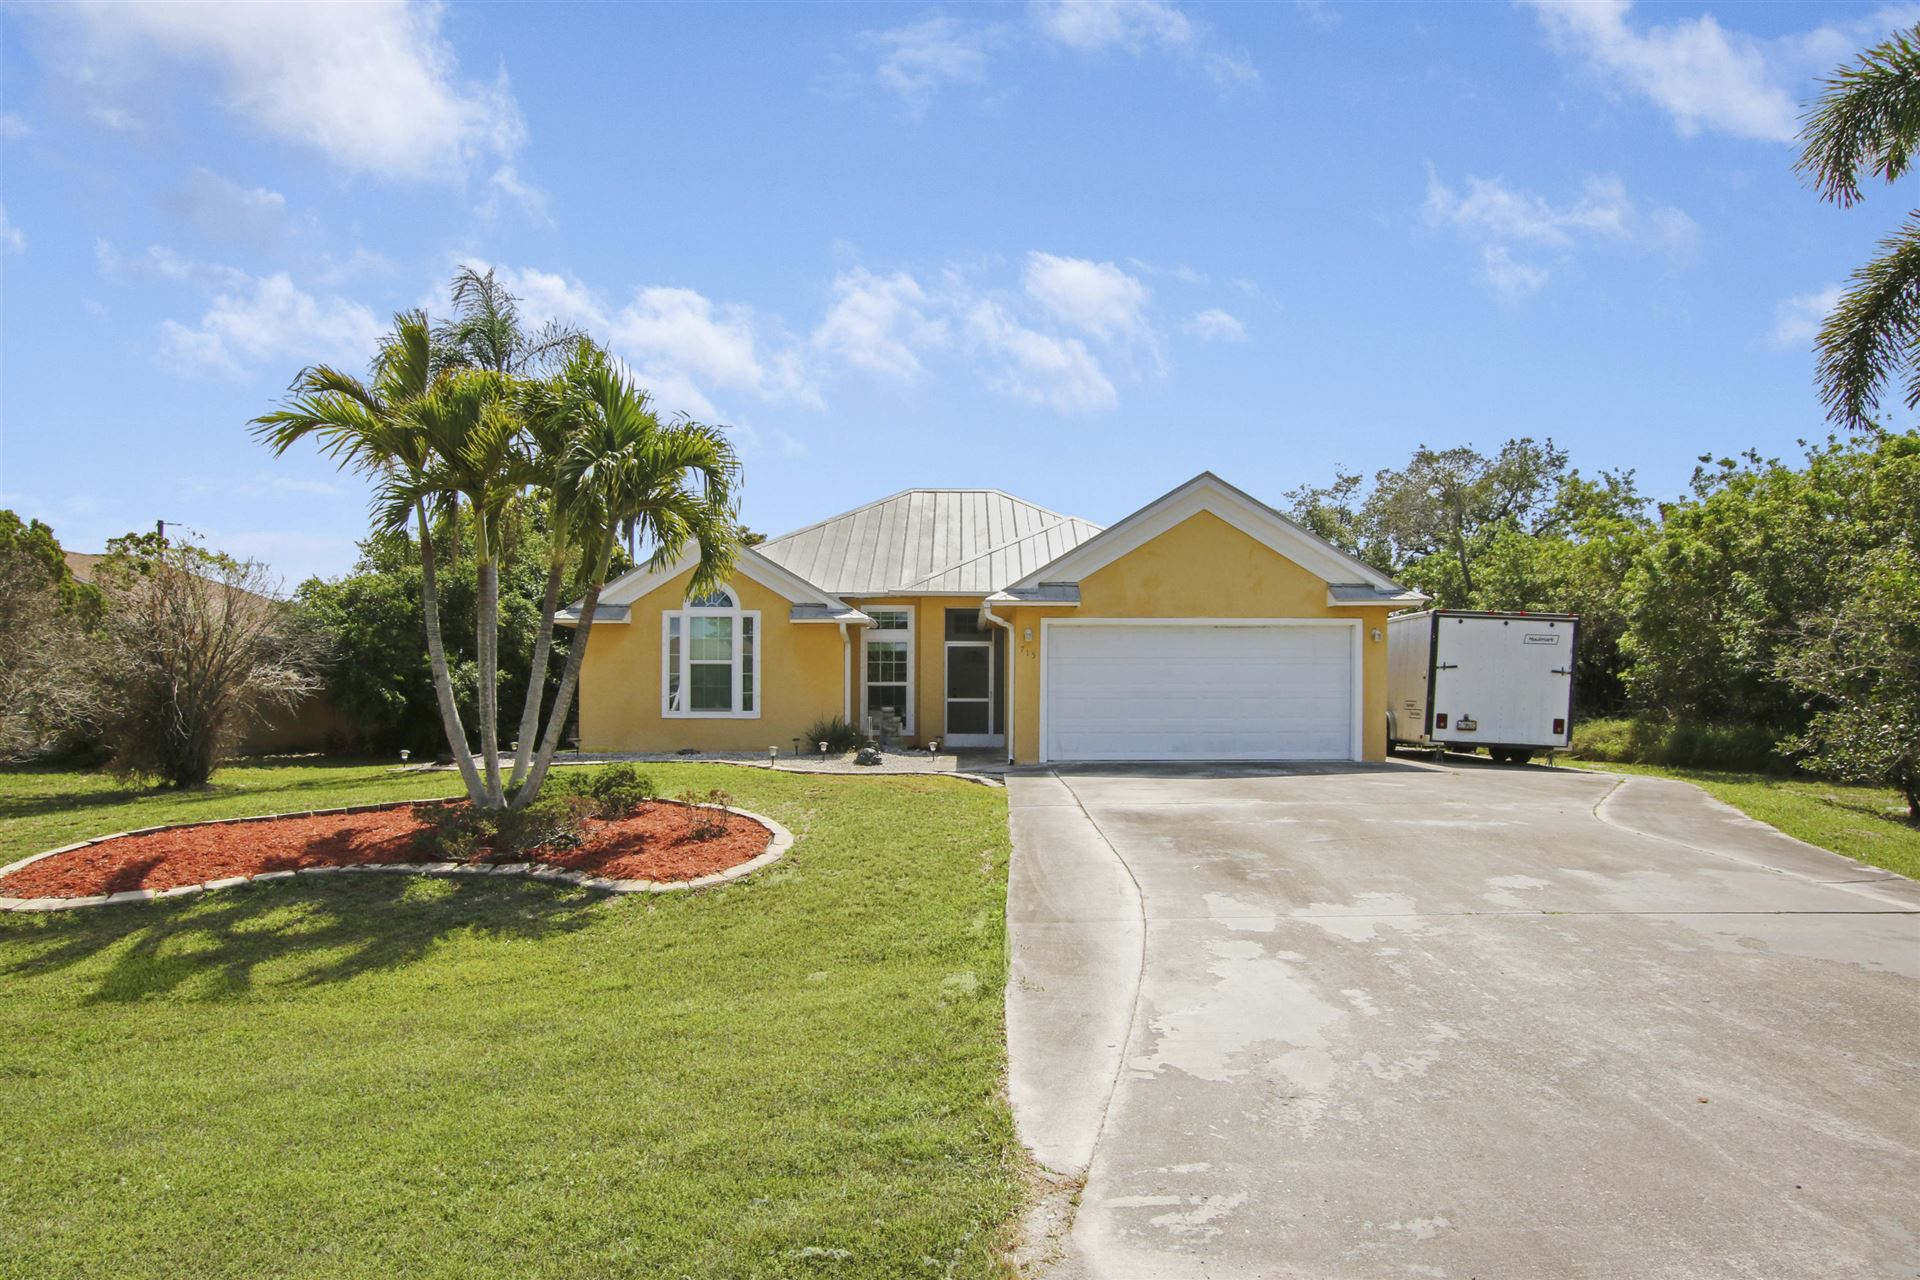 715 SW Hogan Street, Port Saint Lucie, FL 34983 - MLS#: RX-10714016